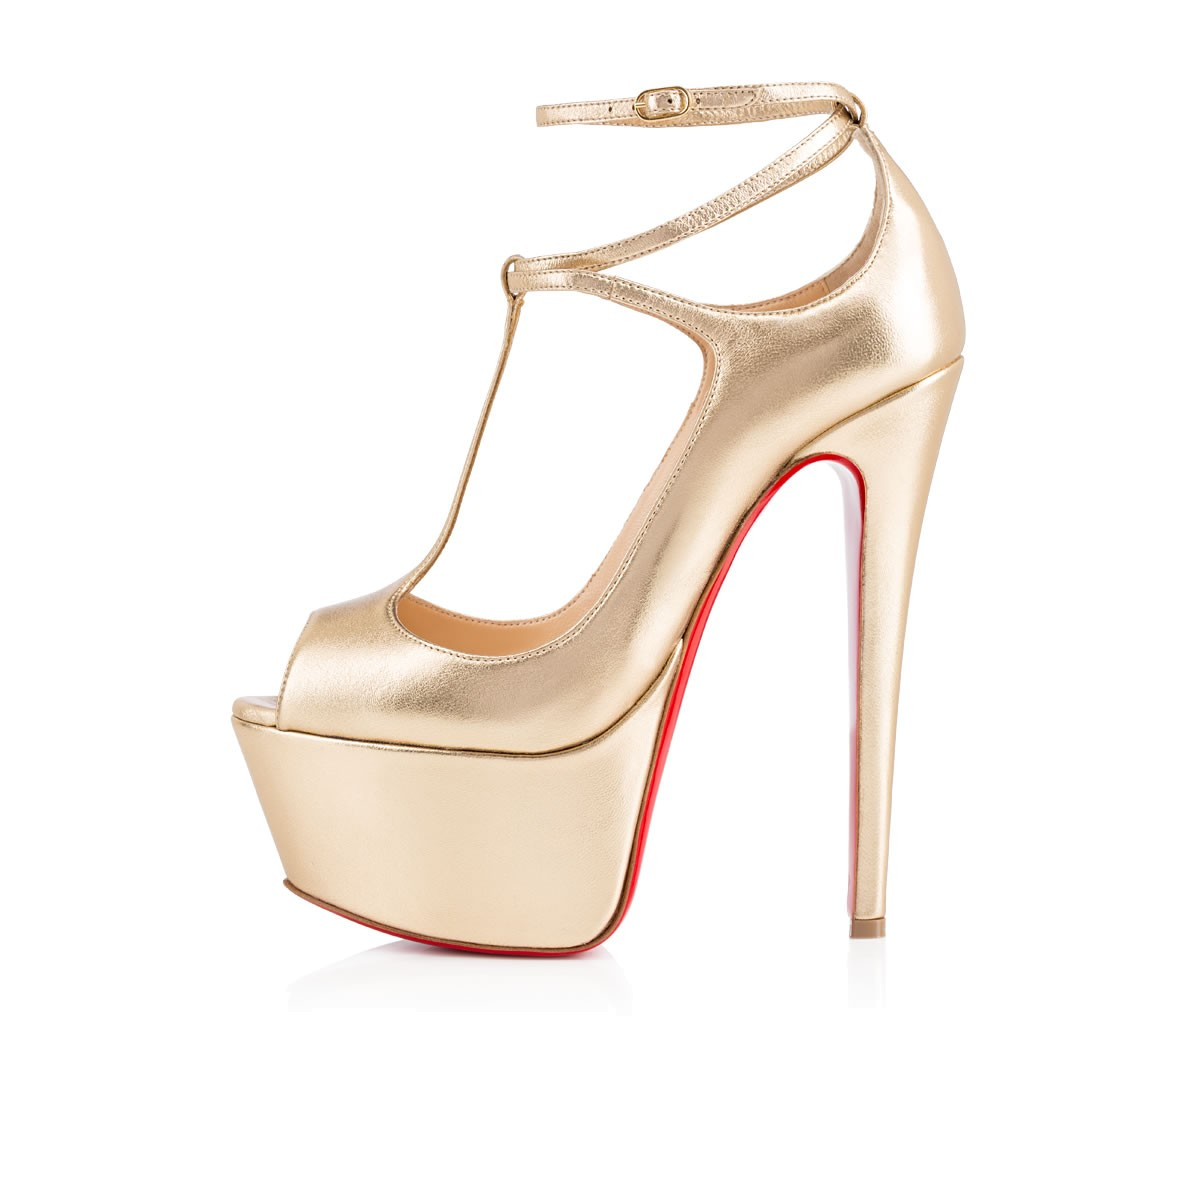 Christian Louboutin Embroidered Round Toe Pumps Christian